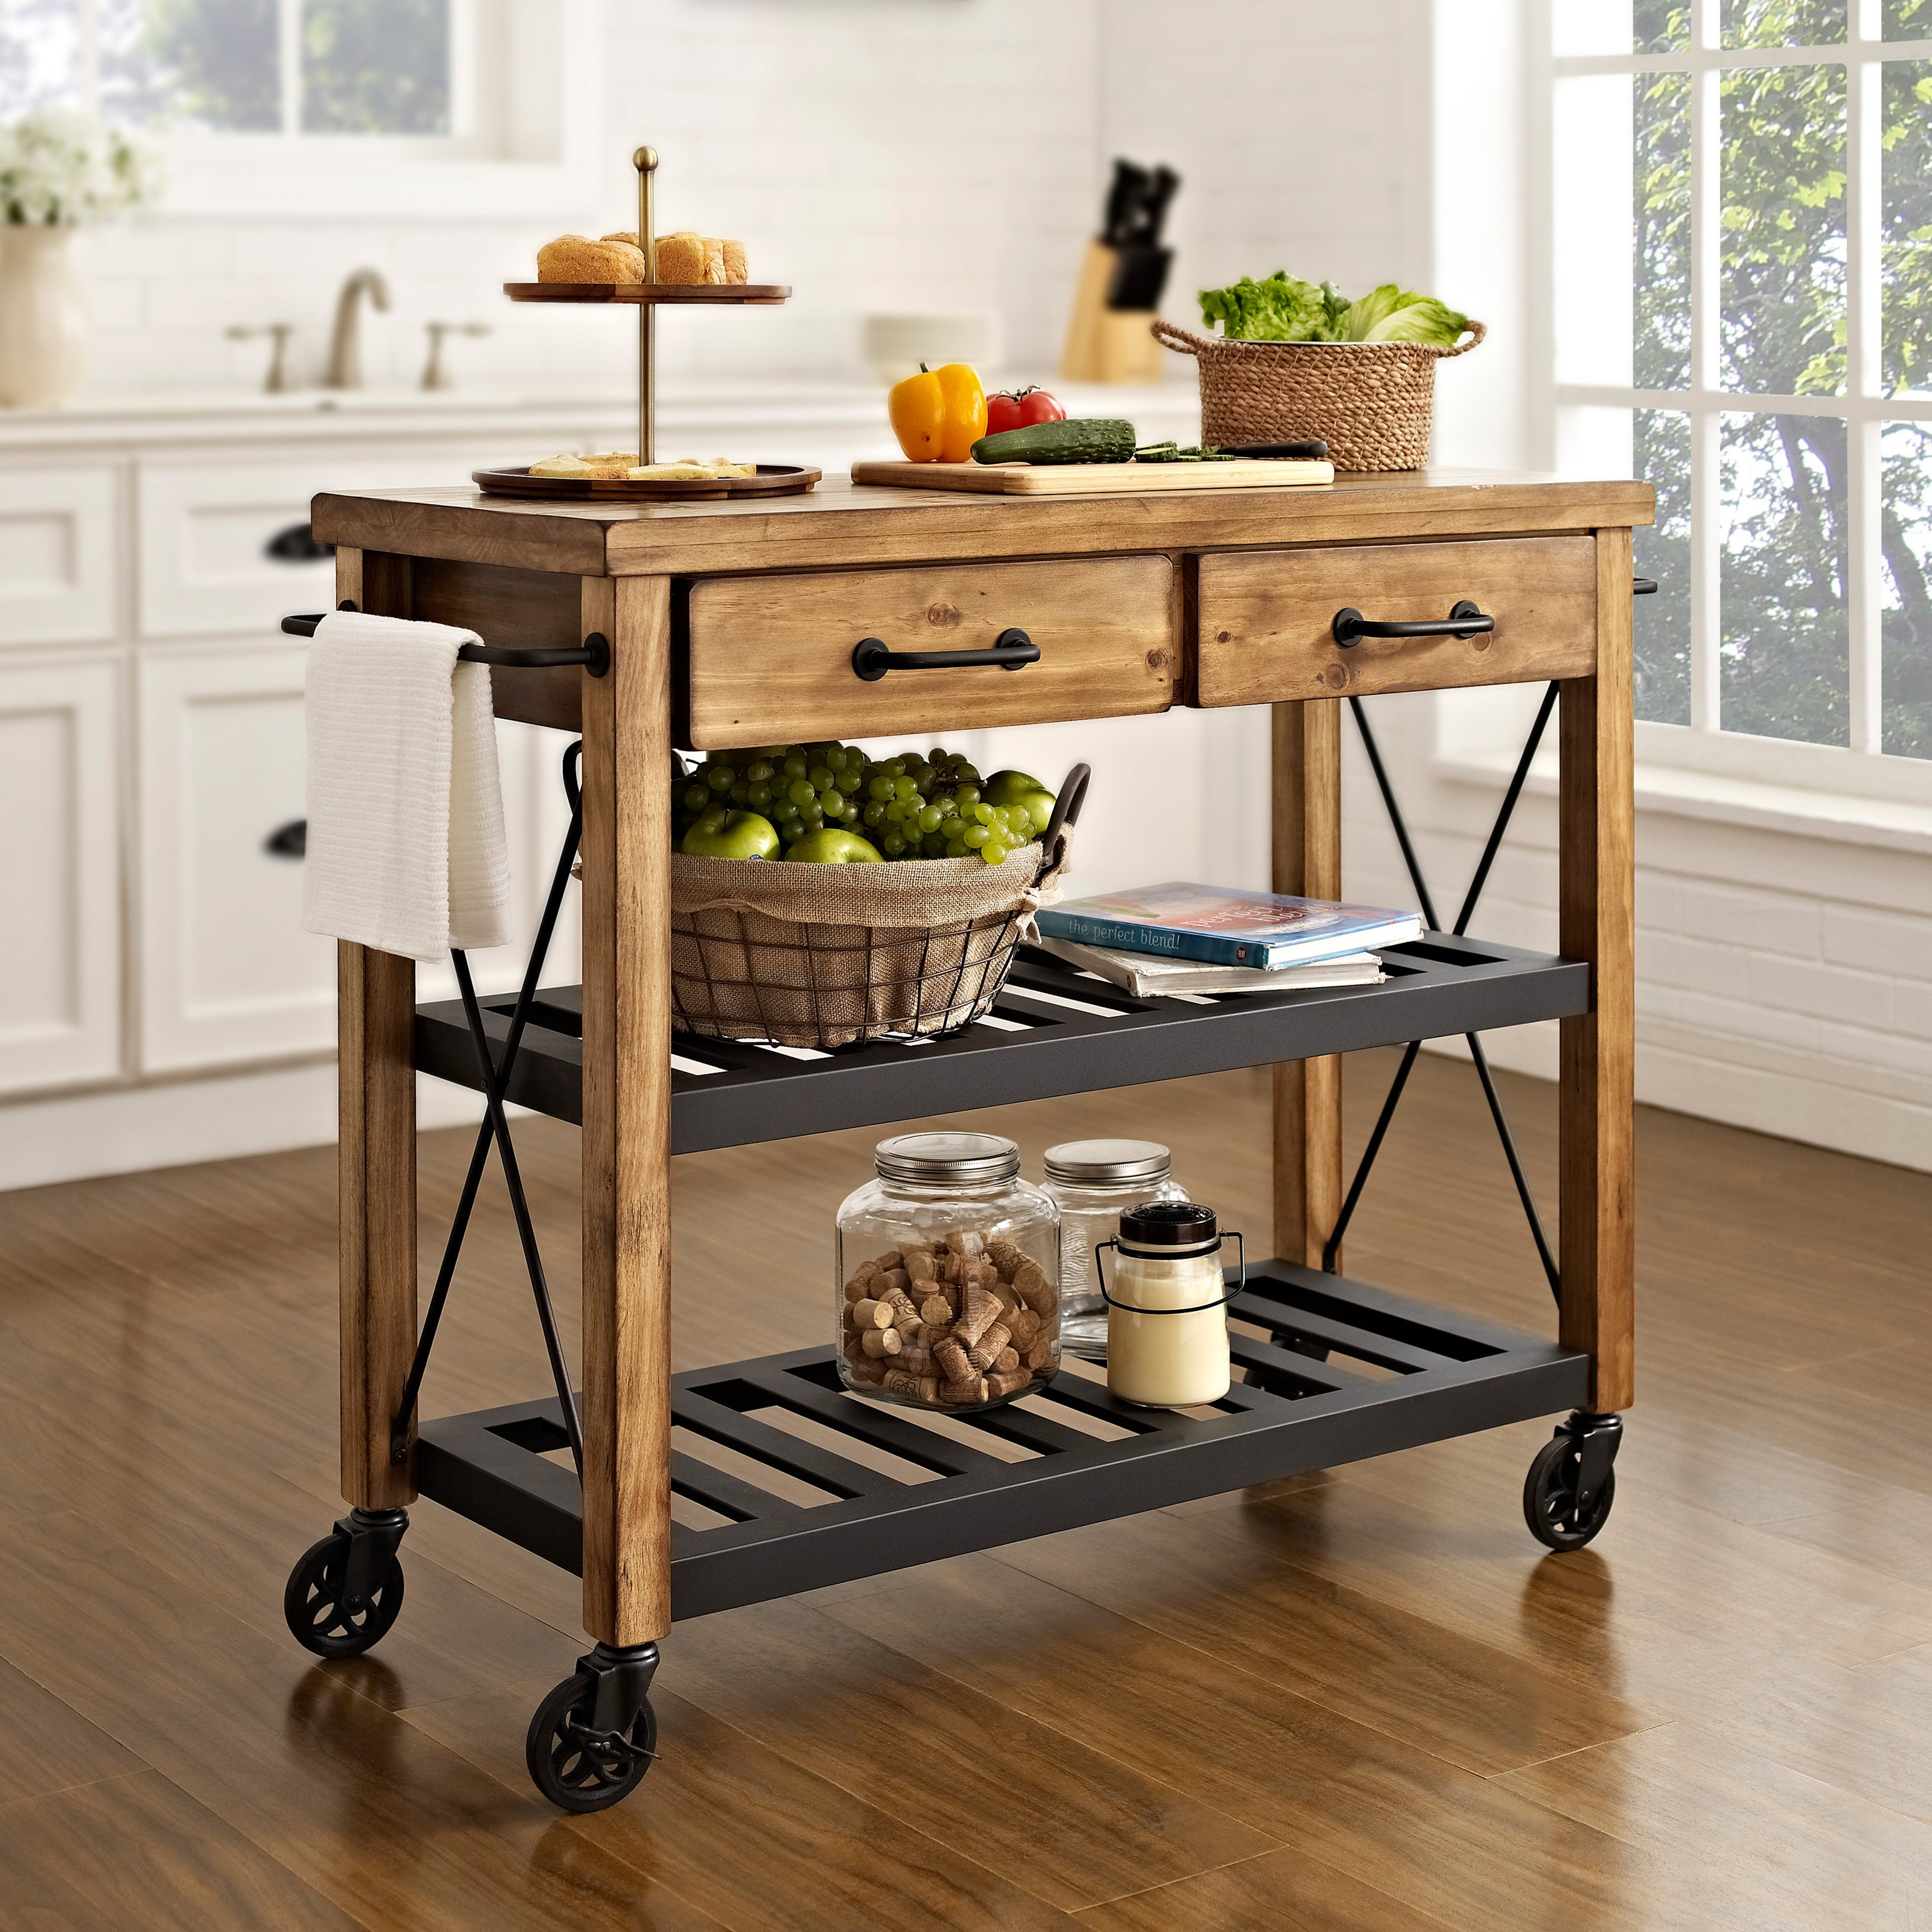 simply crosley roots rack industrial kitchen cart kitchen